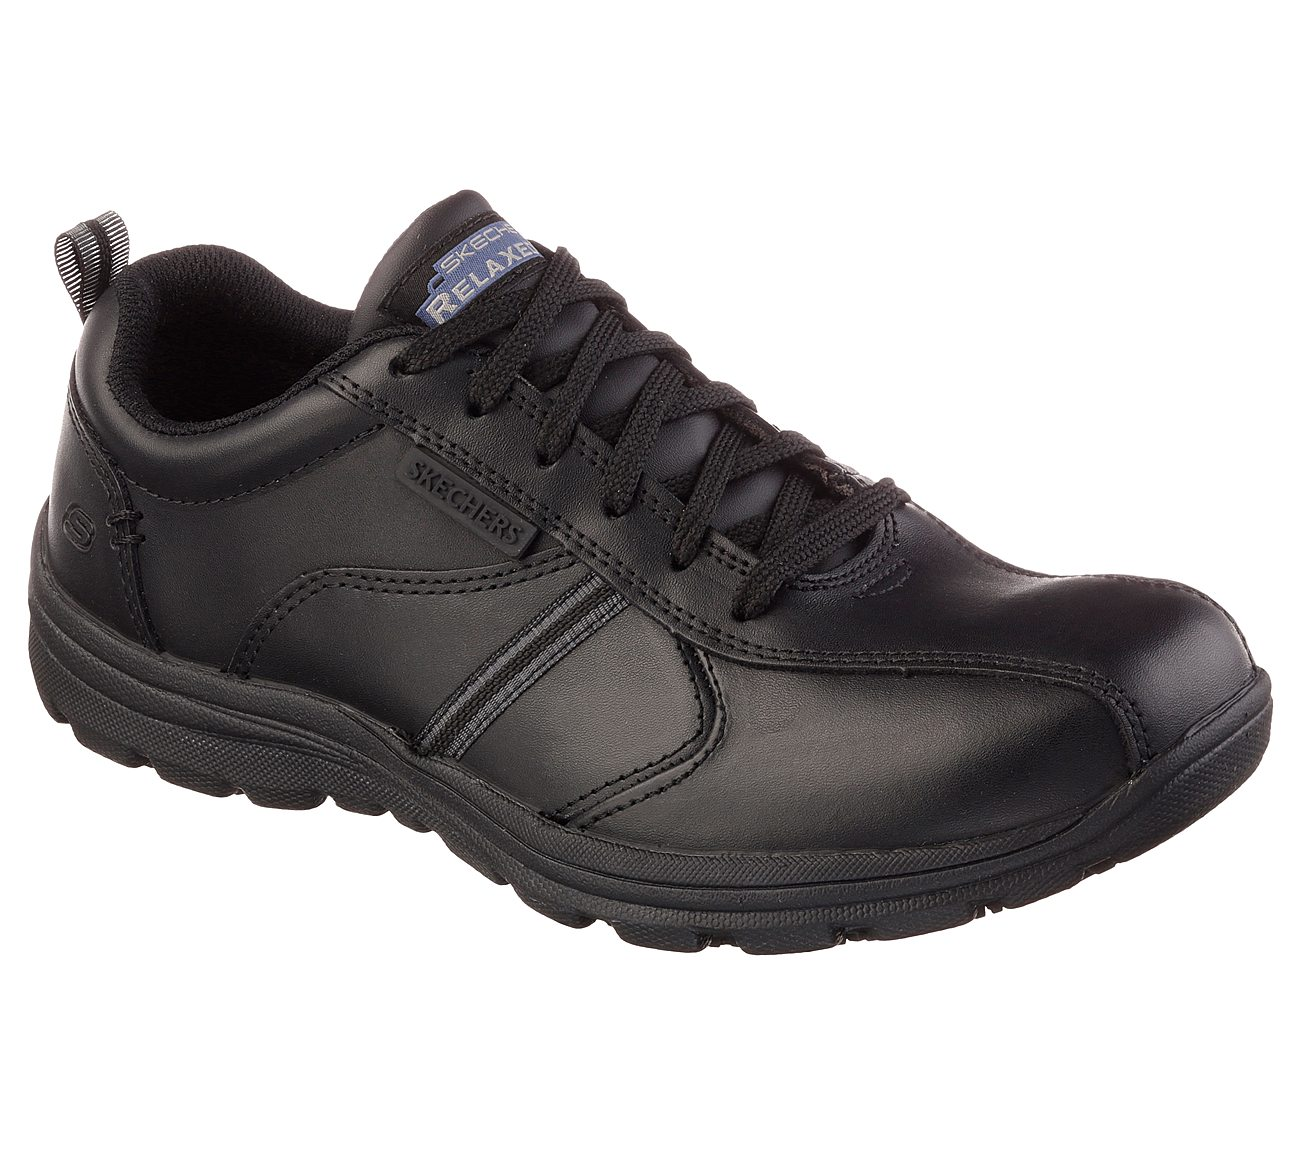 Mens Hobbes-Frat Safety Shoes Skechers Clearance Cheap Real Sale In China Really Cheap Price Cheap Authentic Sale With Mastercard TQ9vmzV